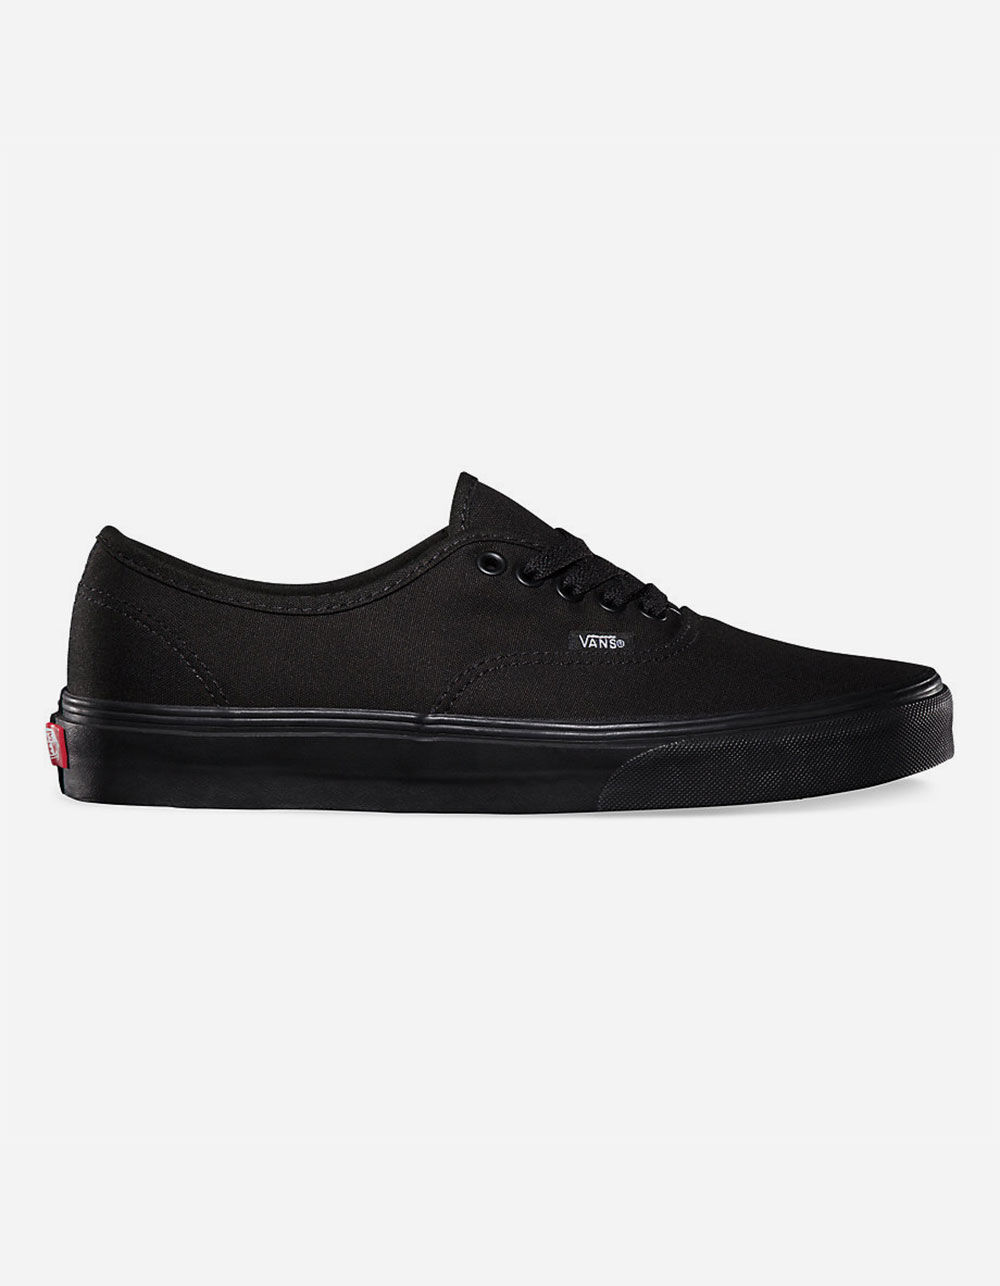 VANS Authentic Black & Black Shoes